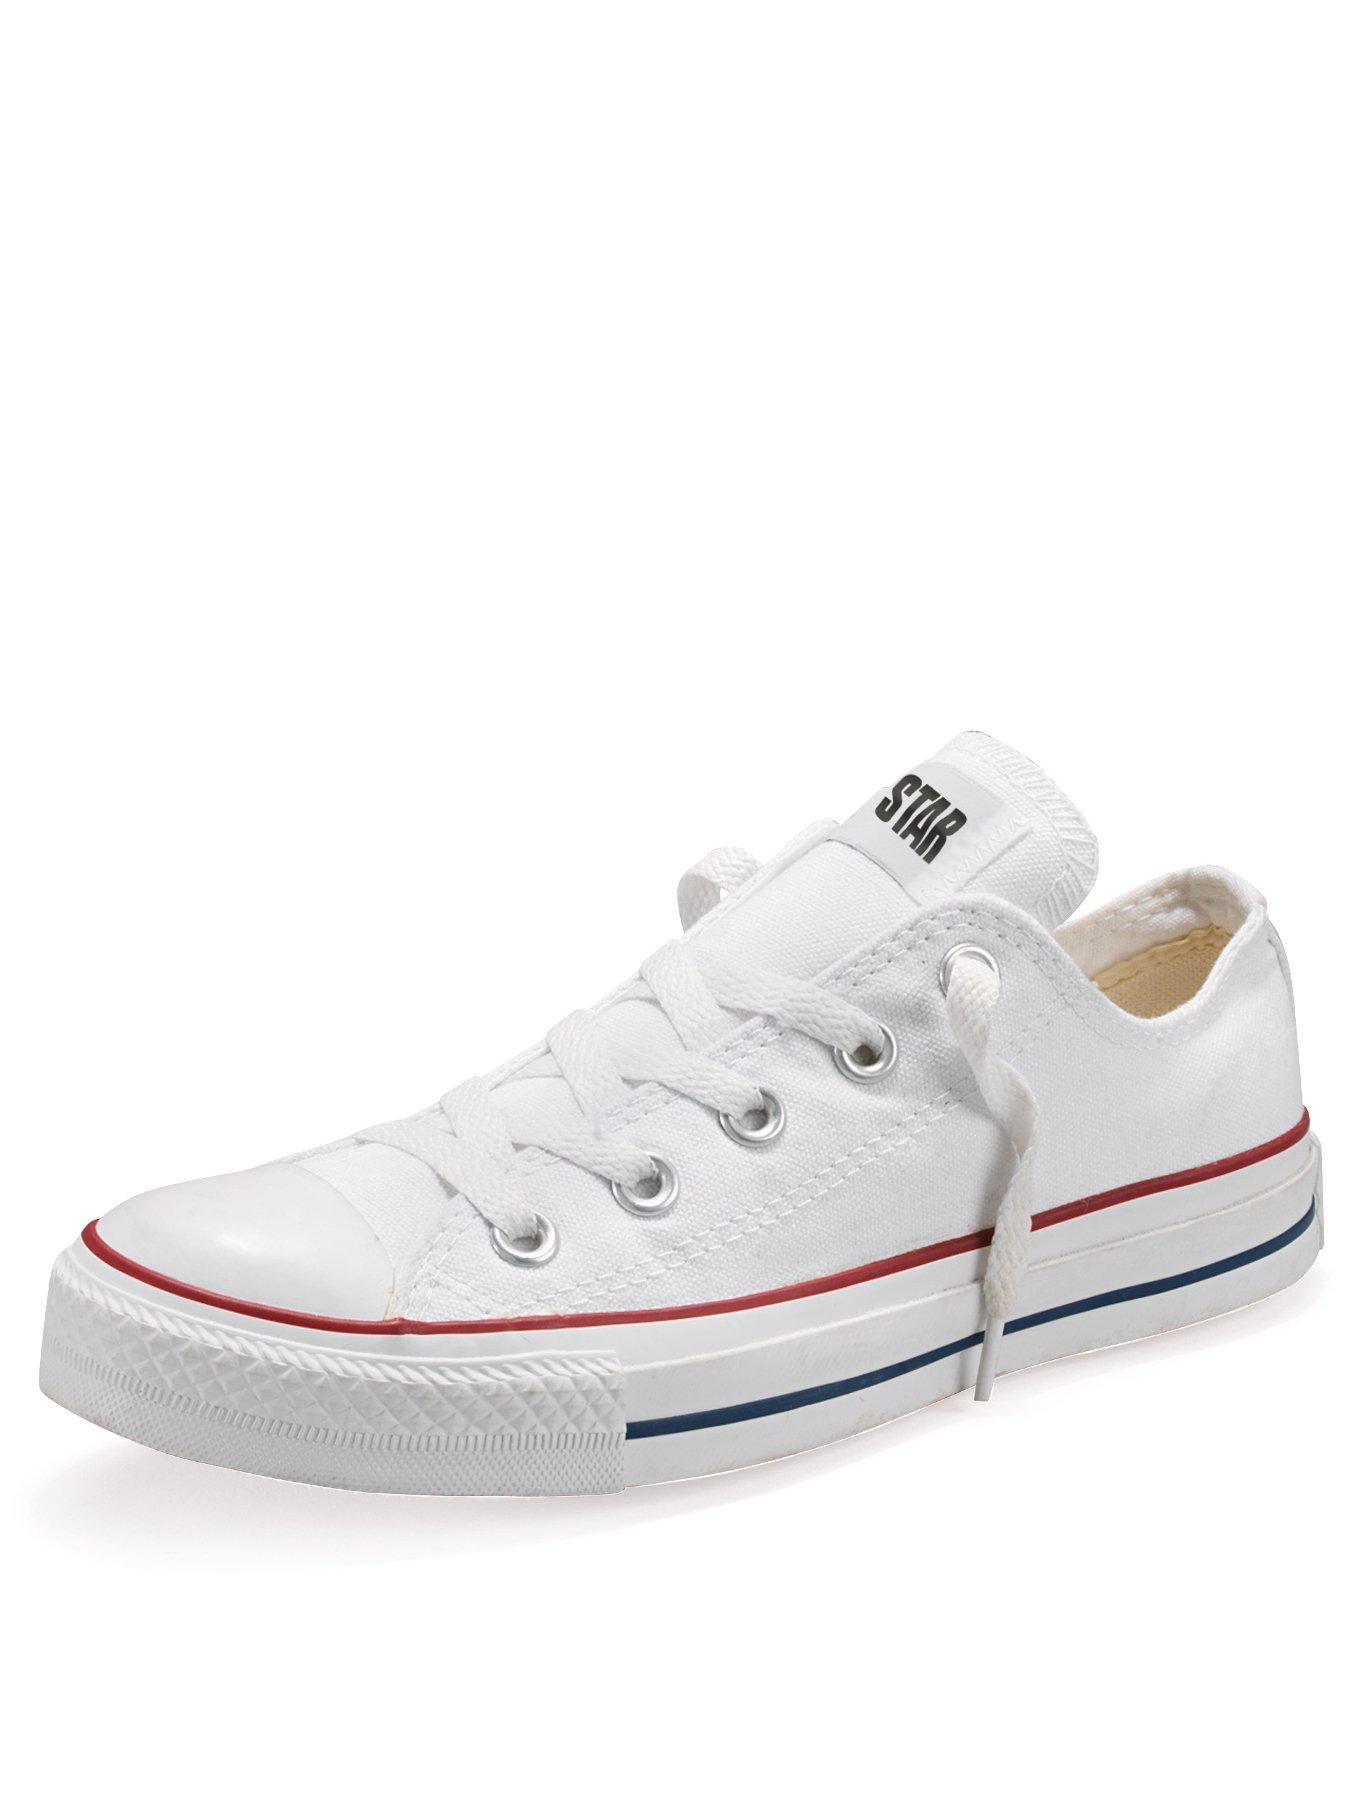 childrens converse uk